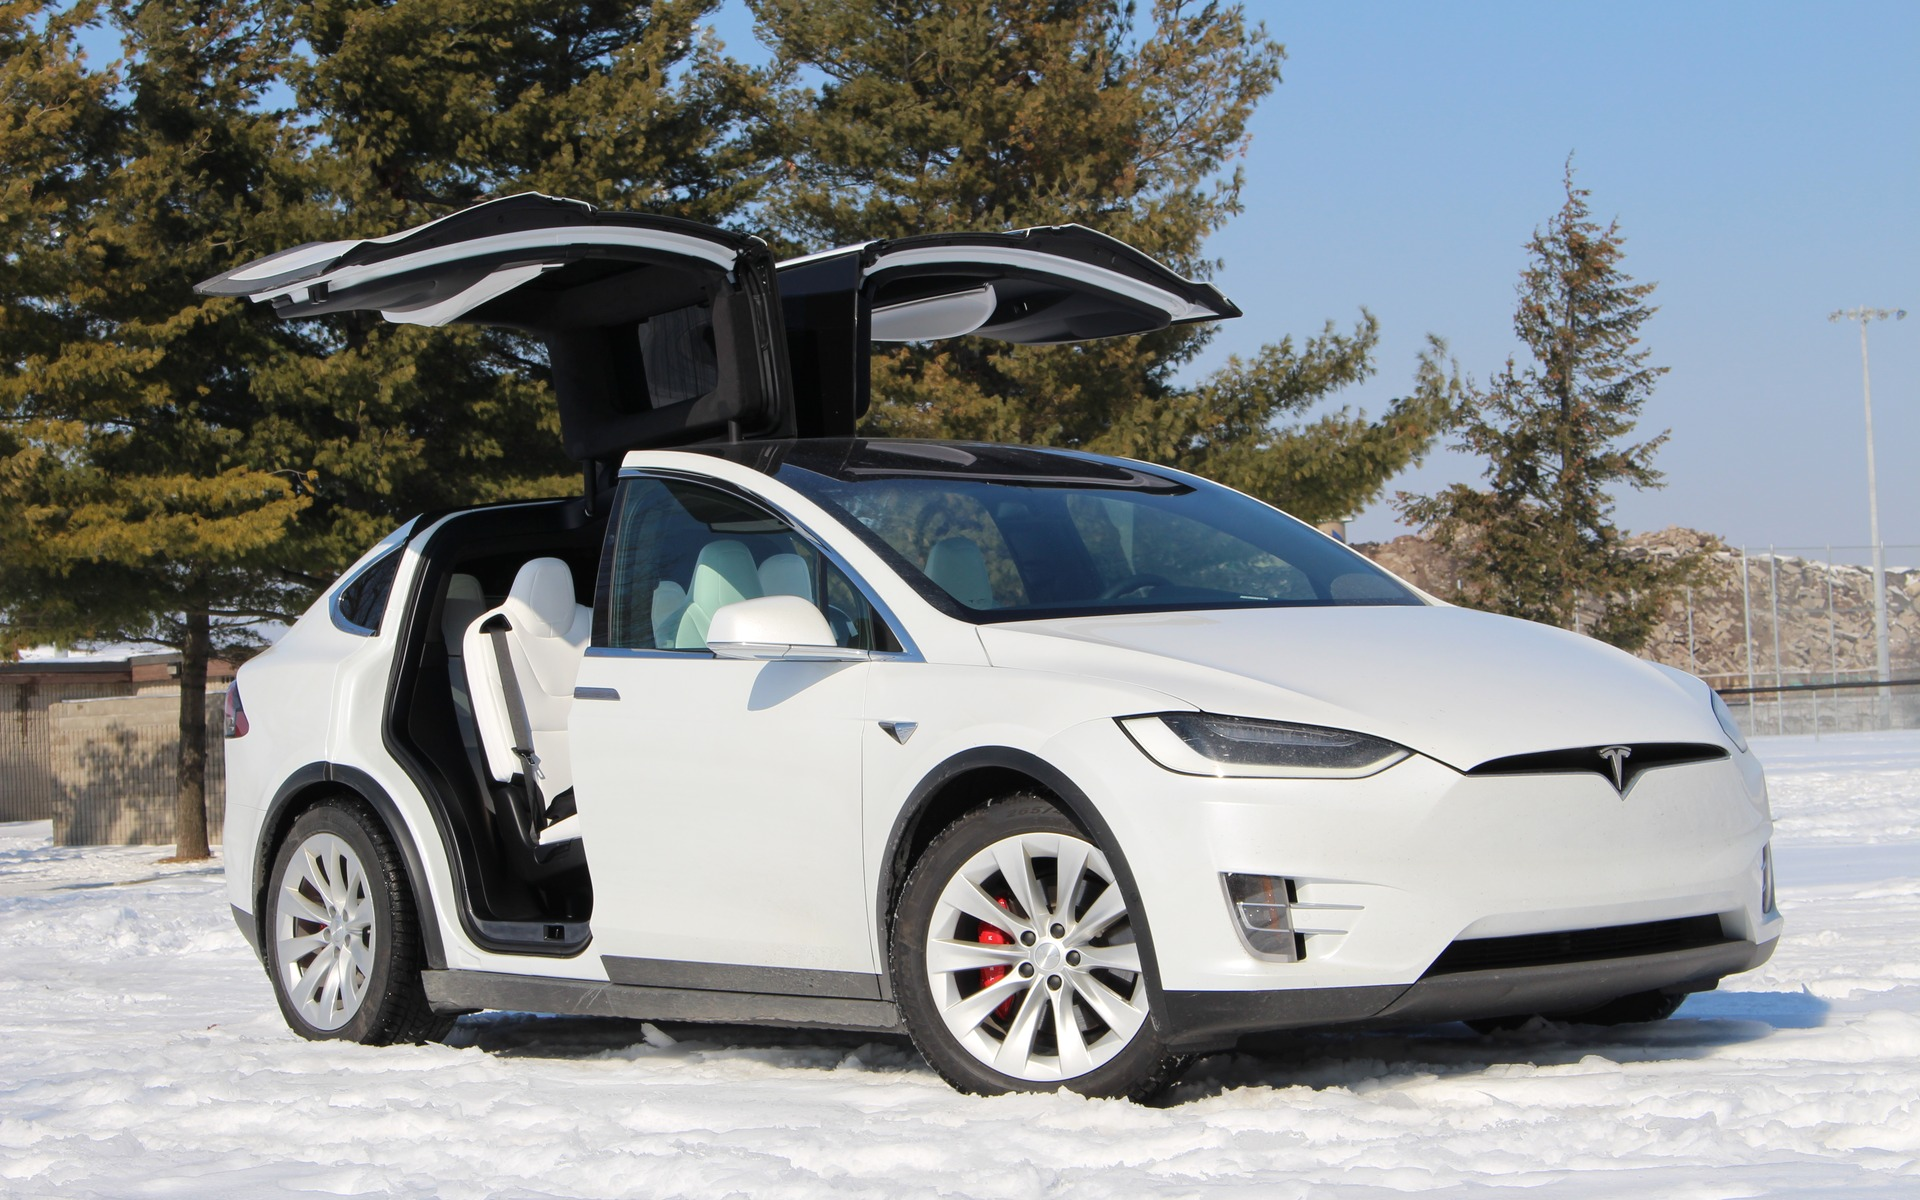 Tesla ia recalling about 135,000 vehicles because of the possibility of faulty touchscreens.